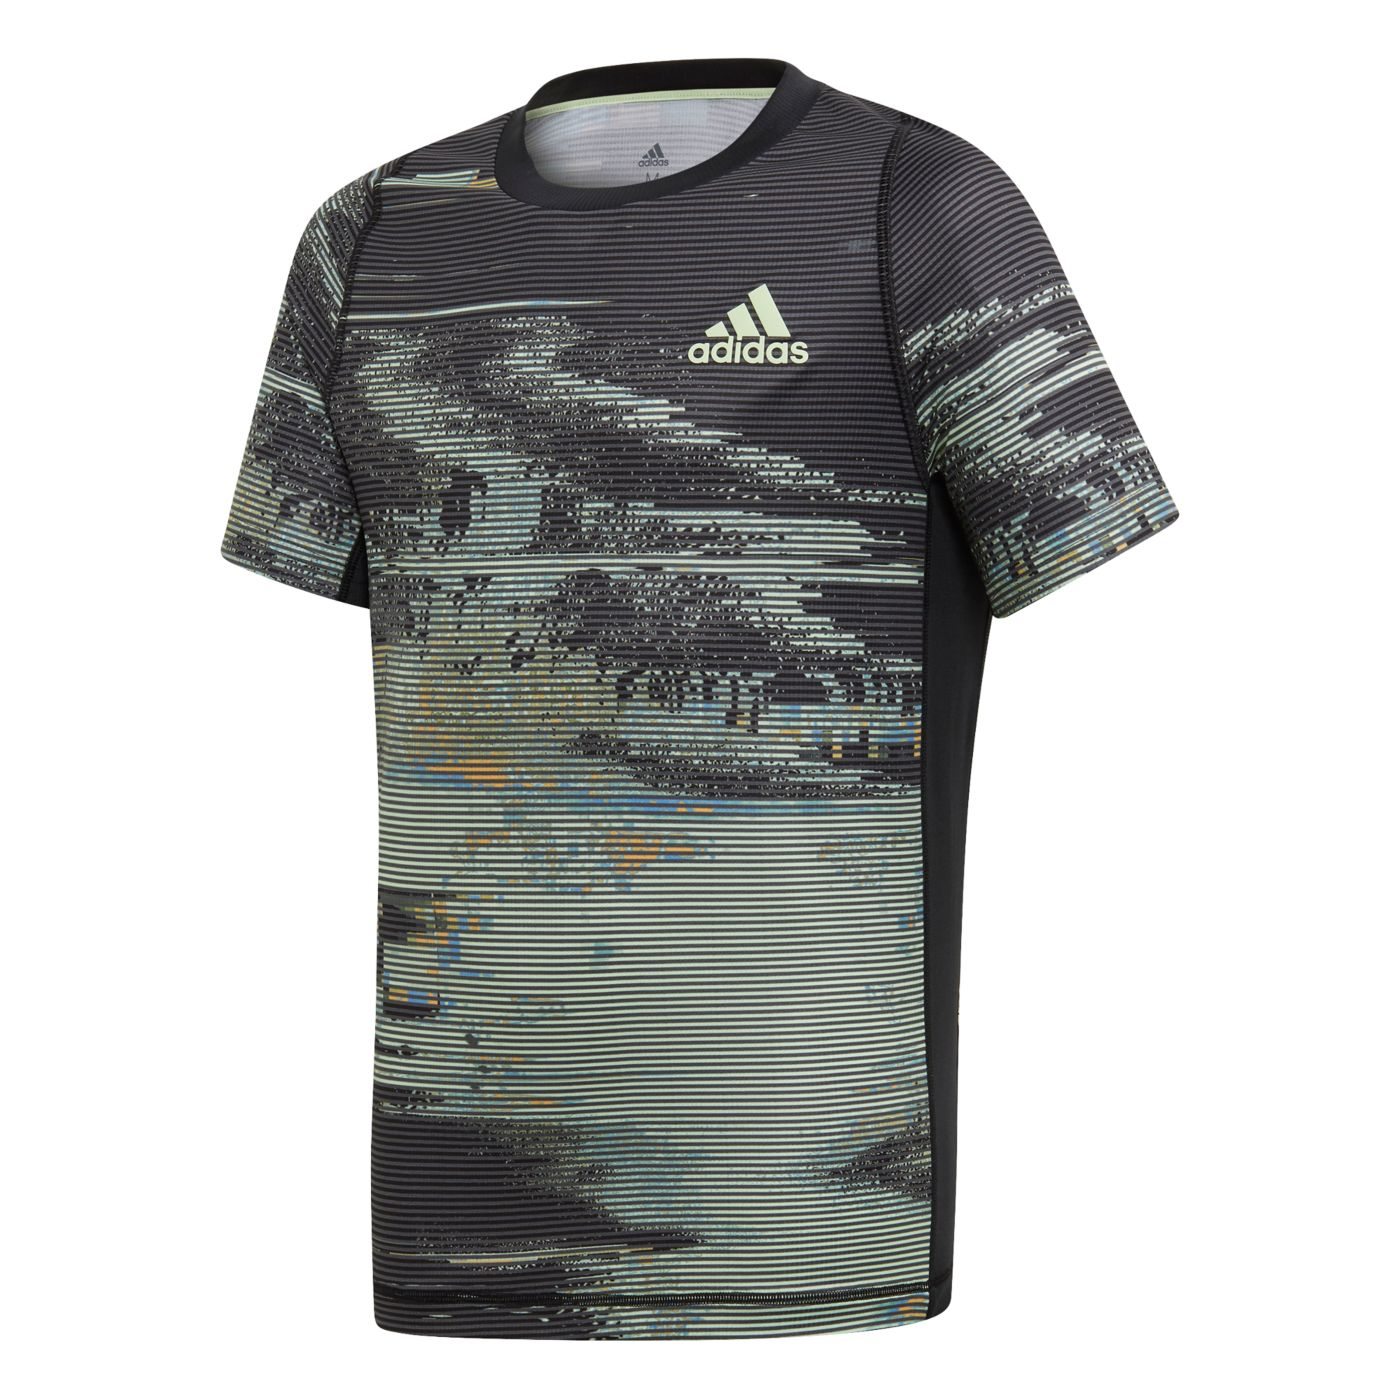 adidas Boys' New York Tennis T-Shirt